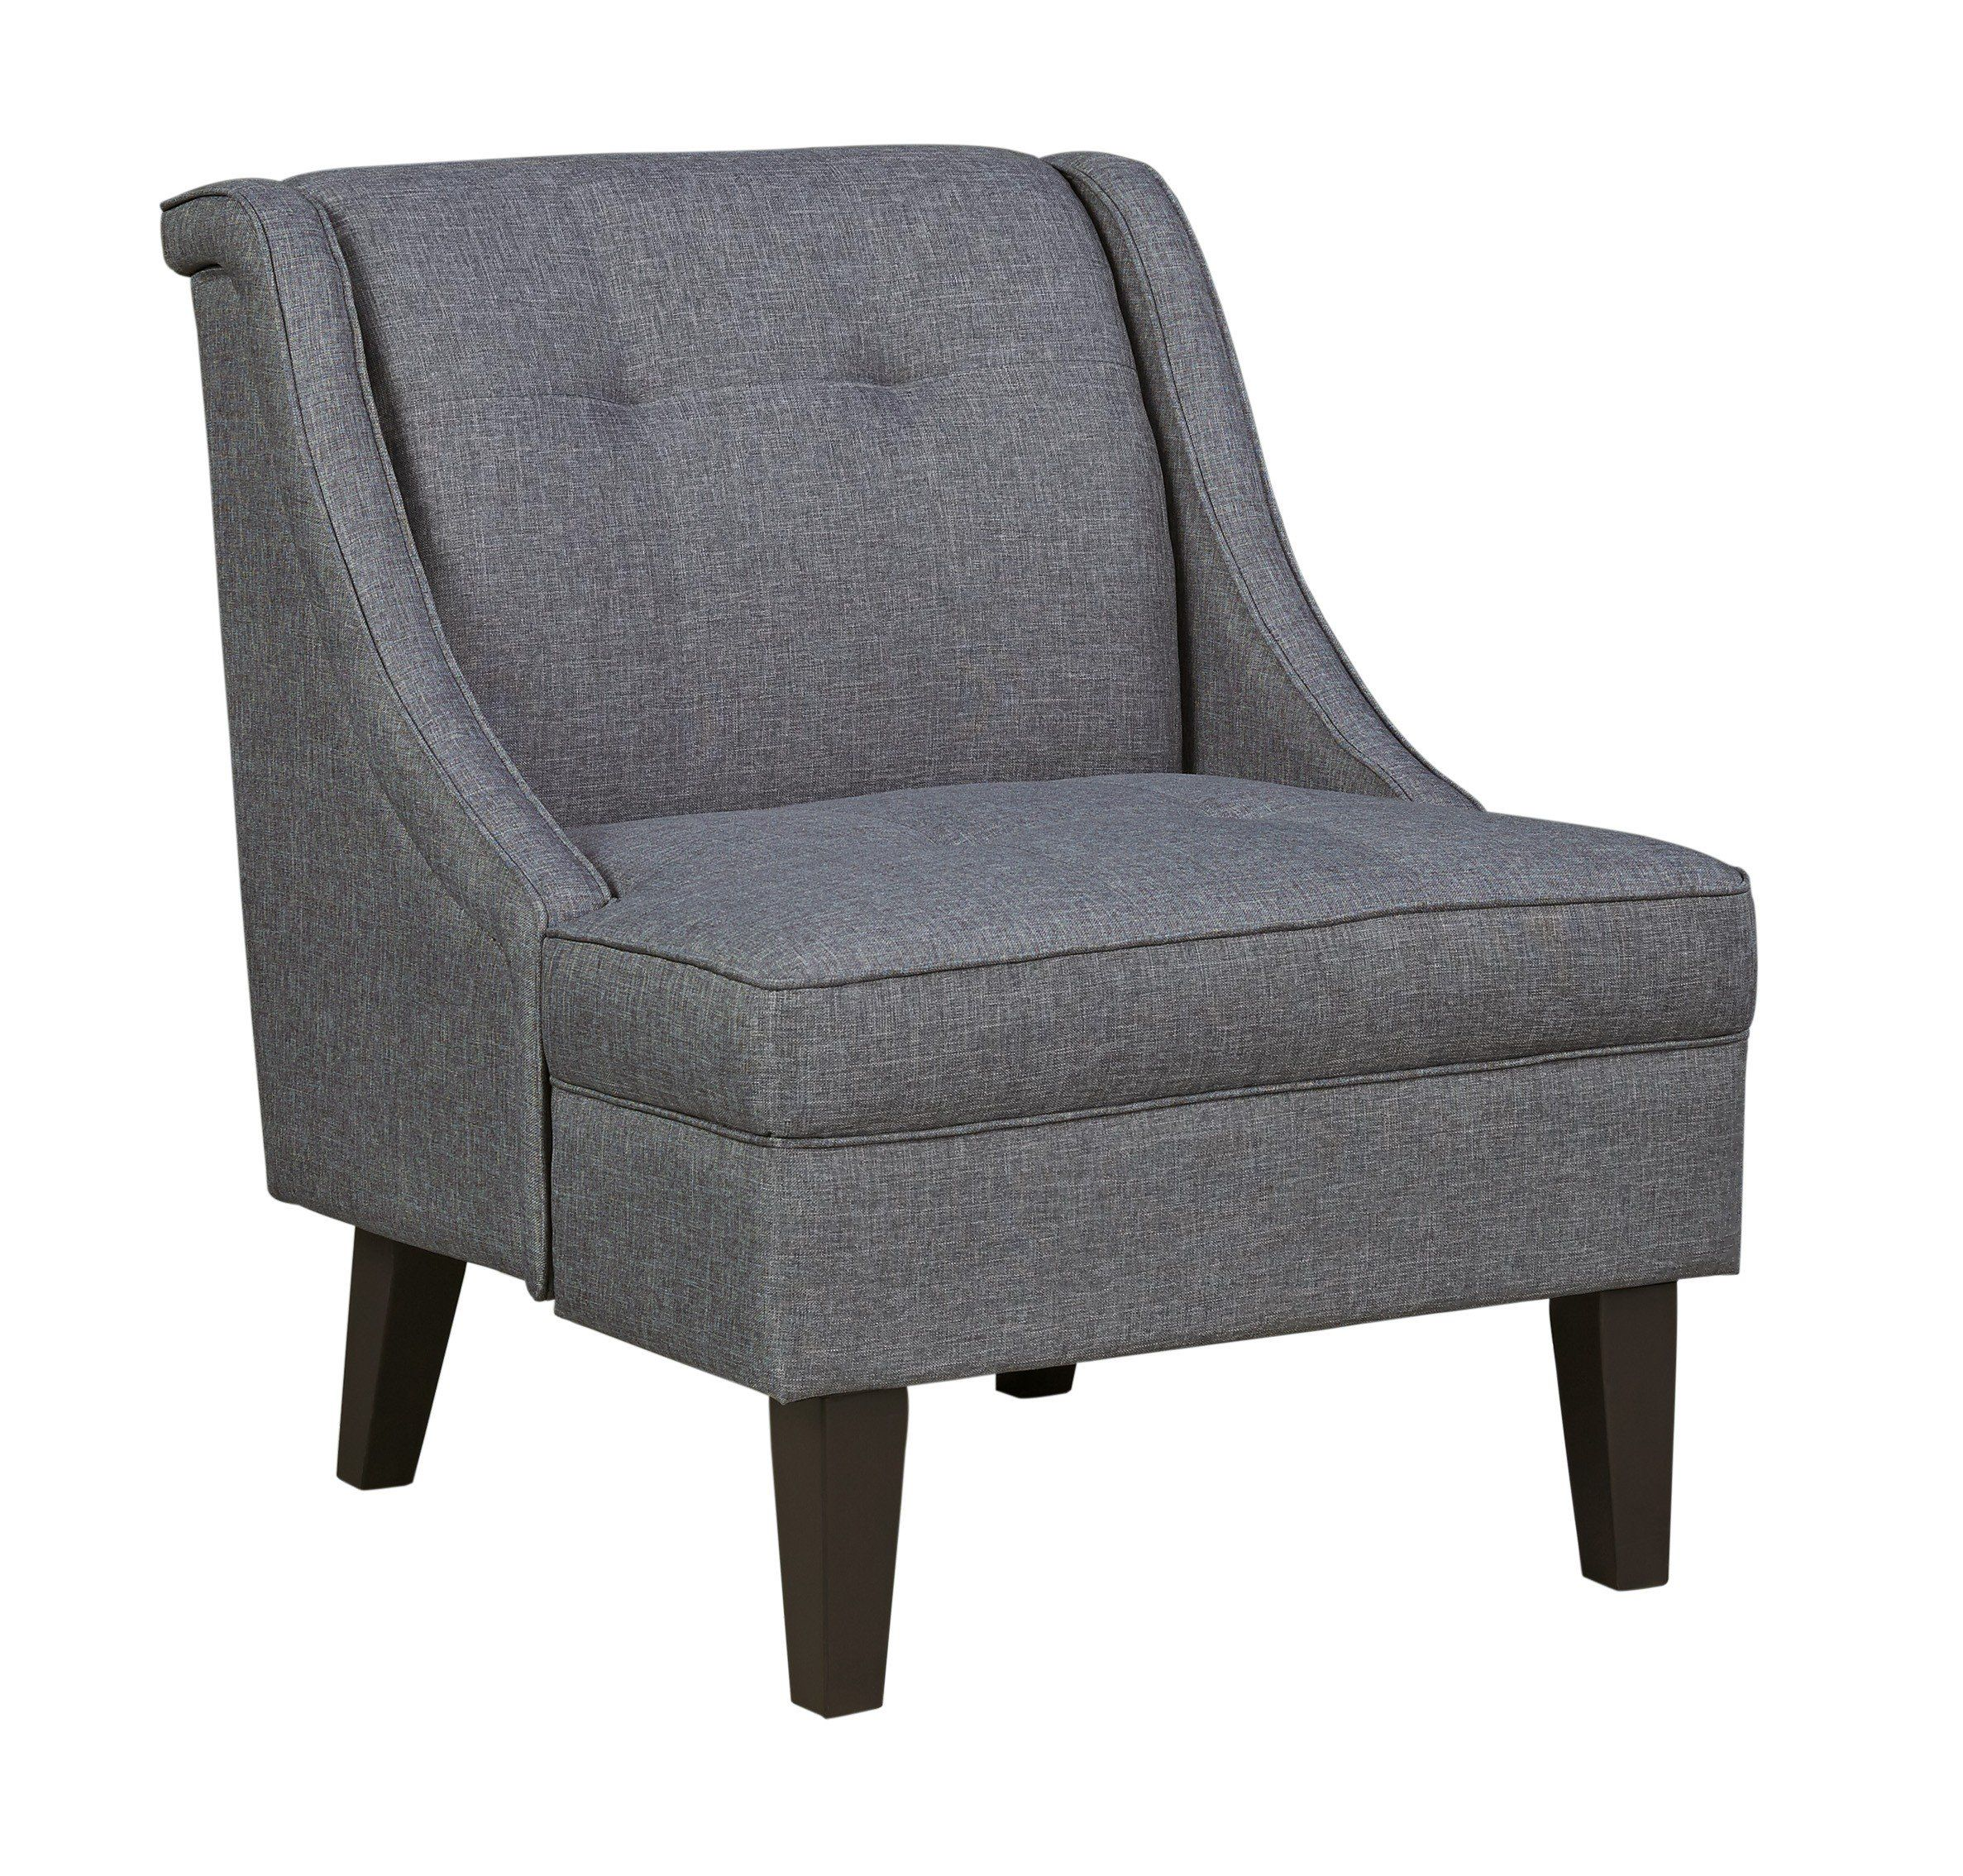 Best Signature Design By Ashley Calion Gunmetal Accent Chair 640 x 480